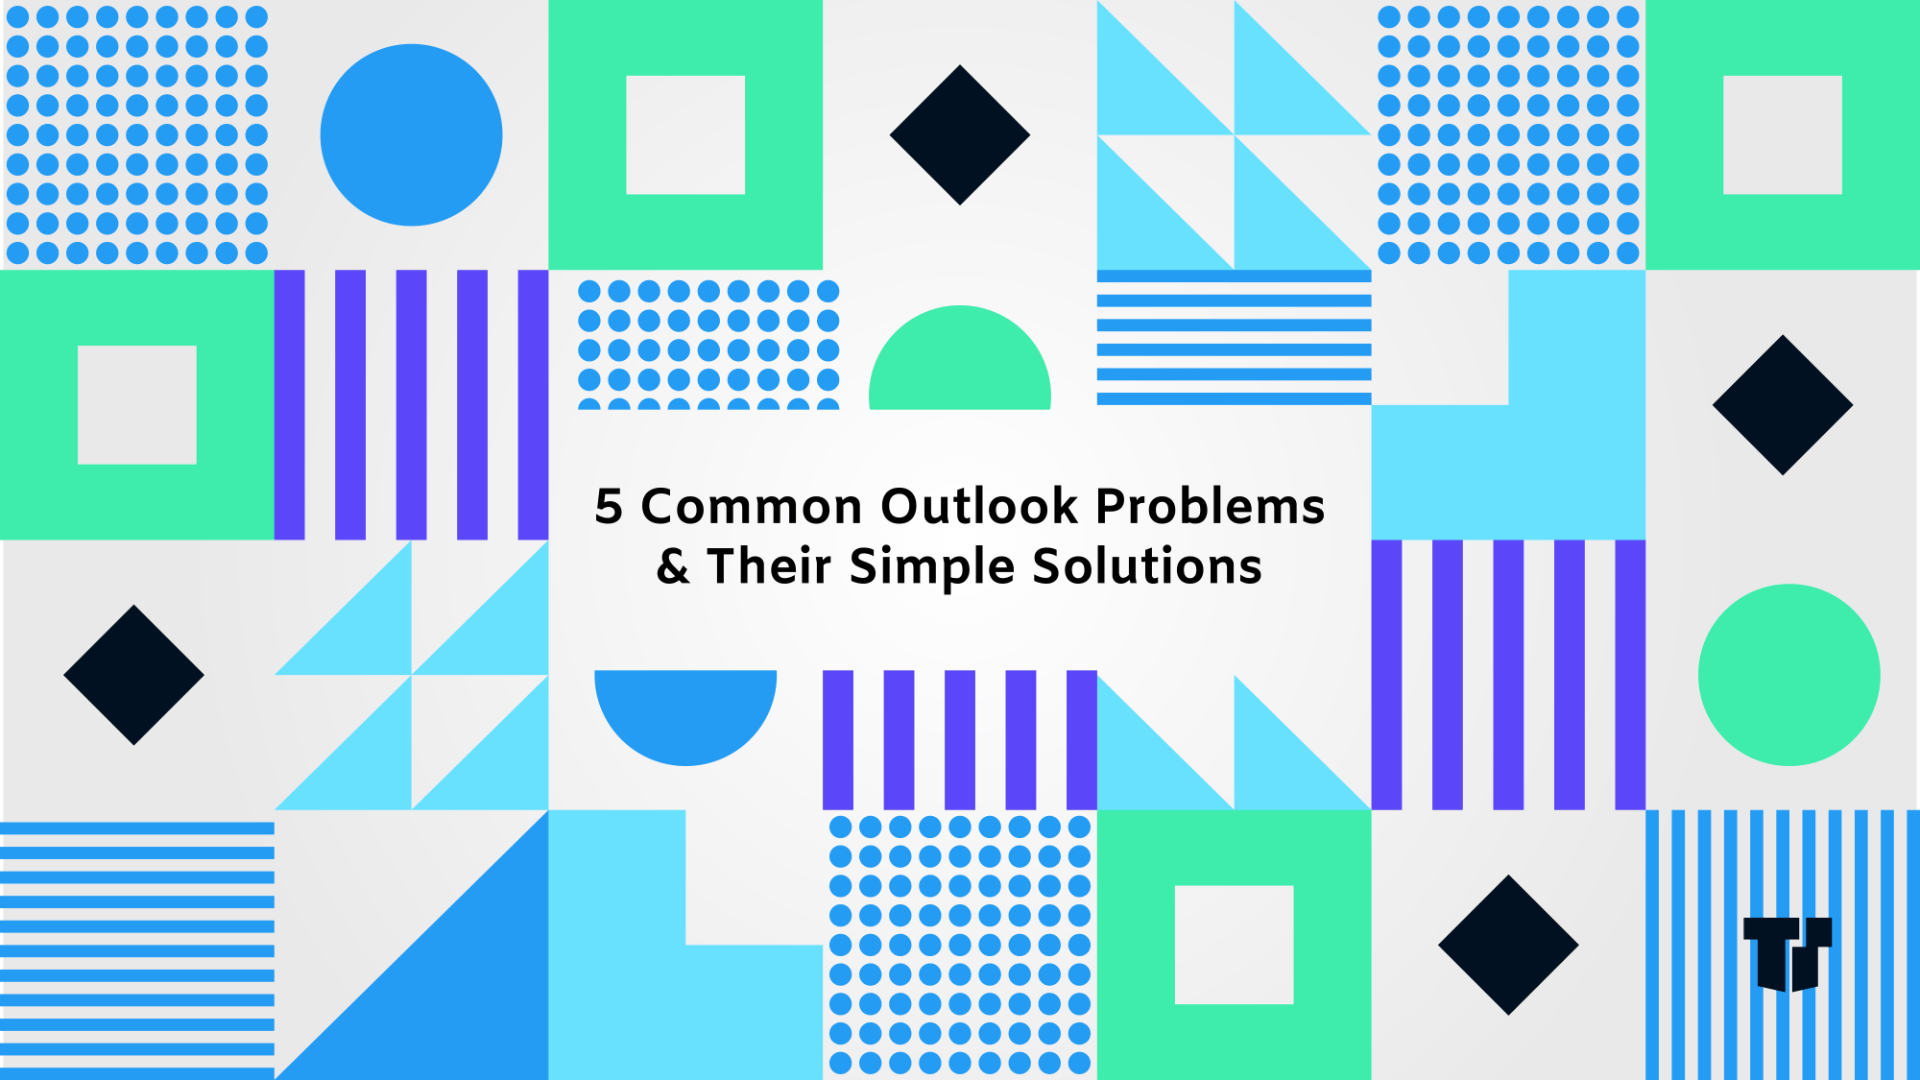 5 Common Outlook Problems & Their Simple Solutions cover image